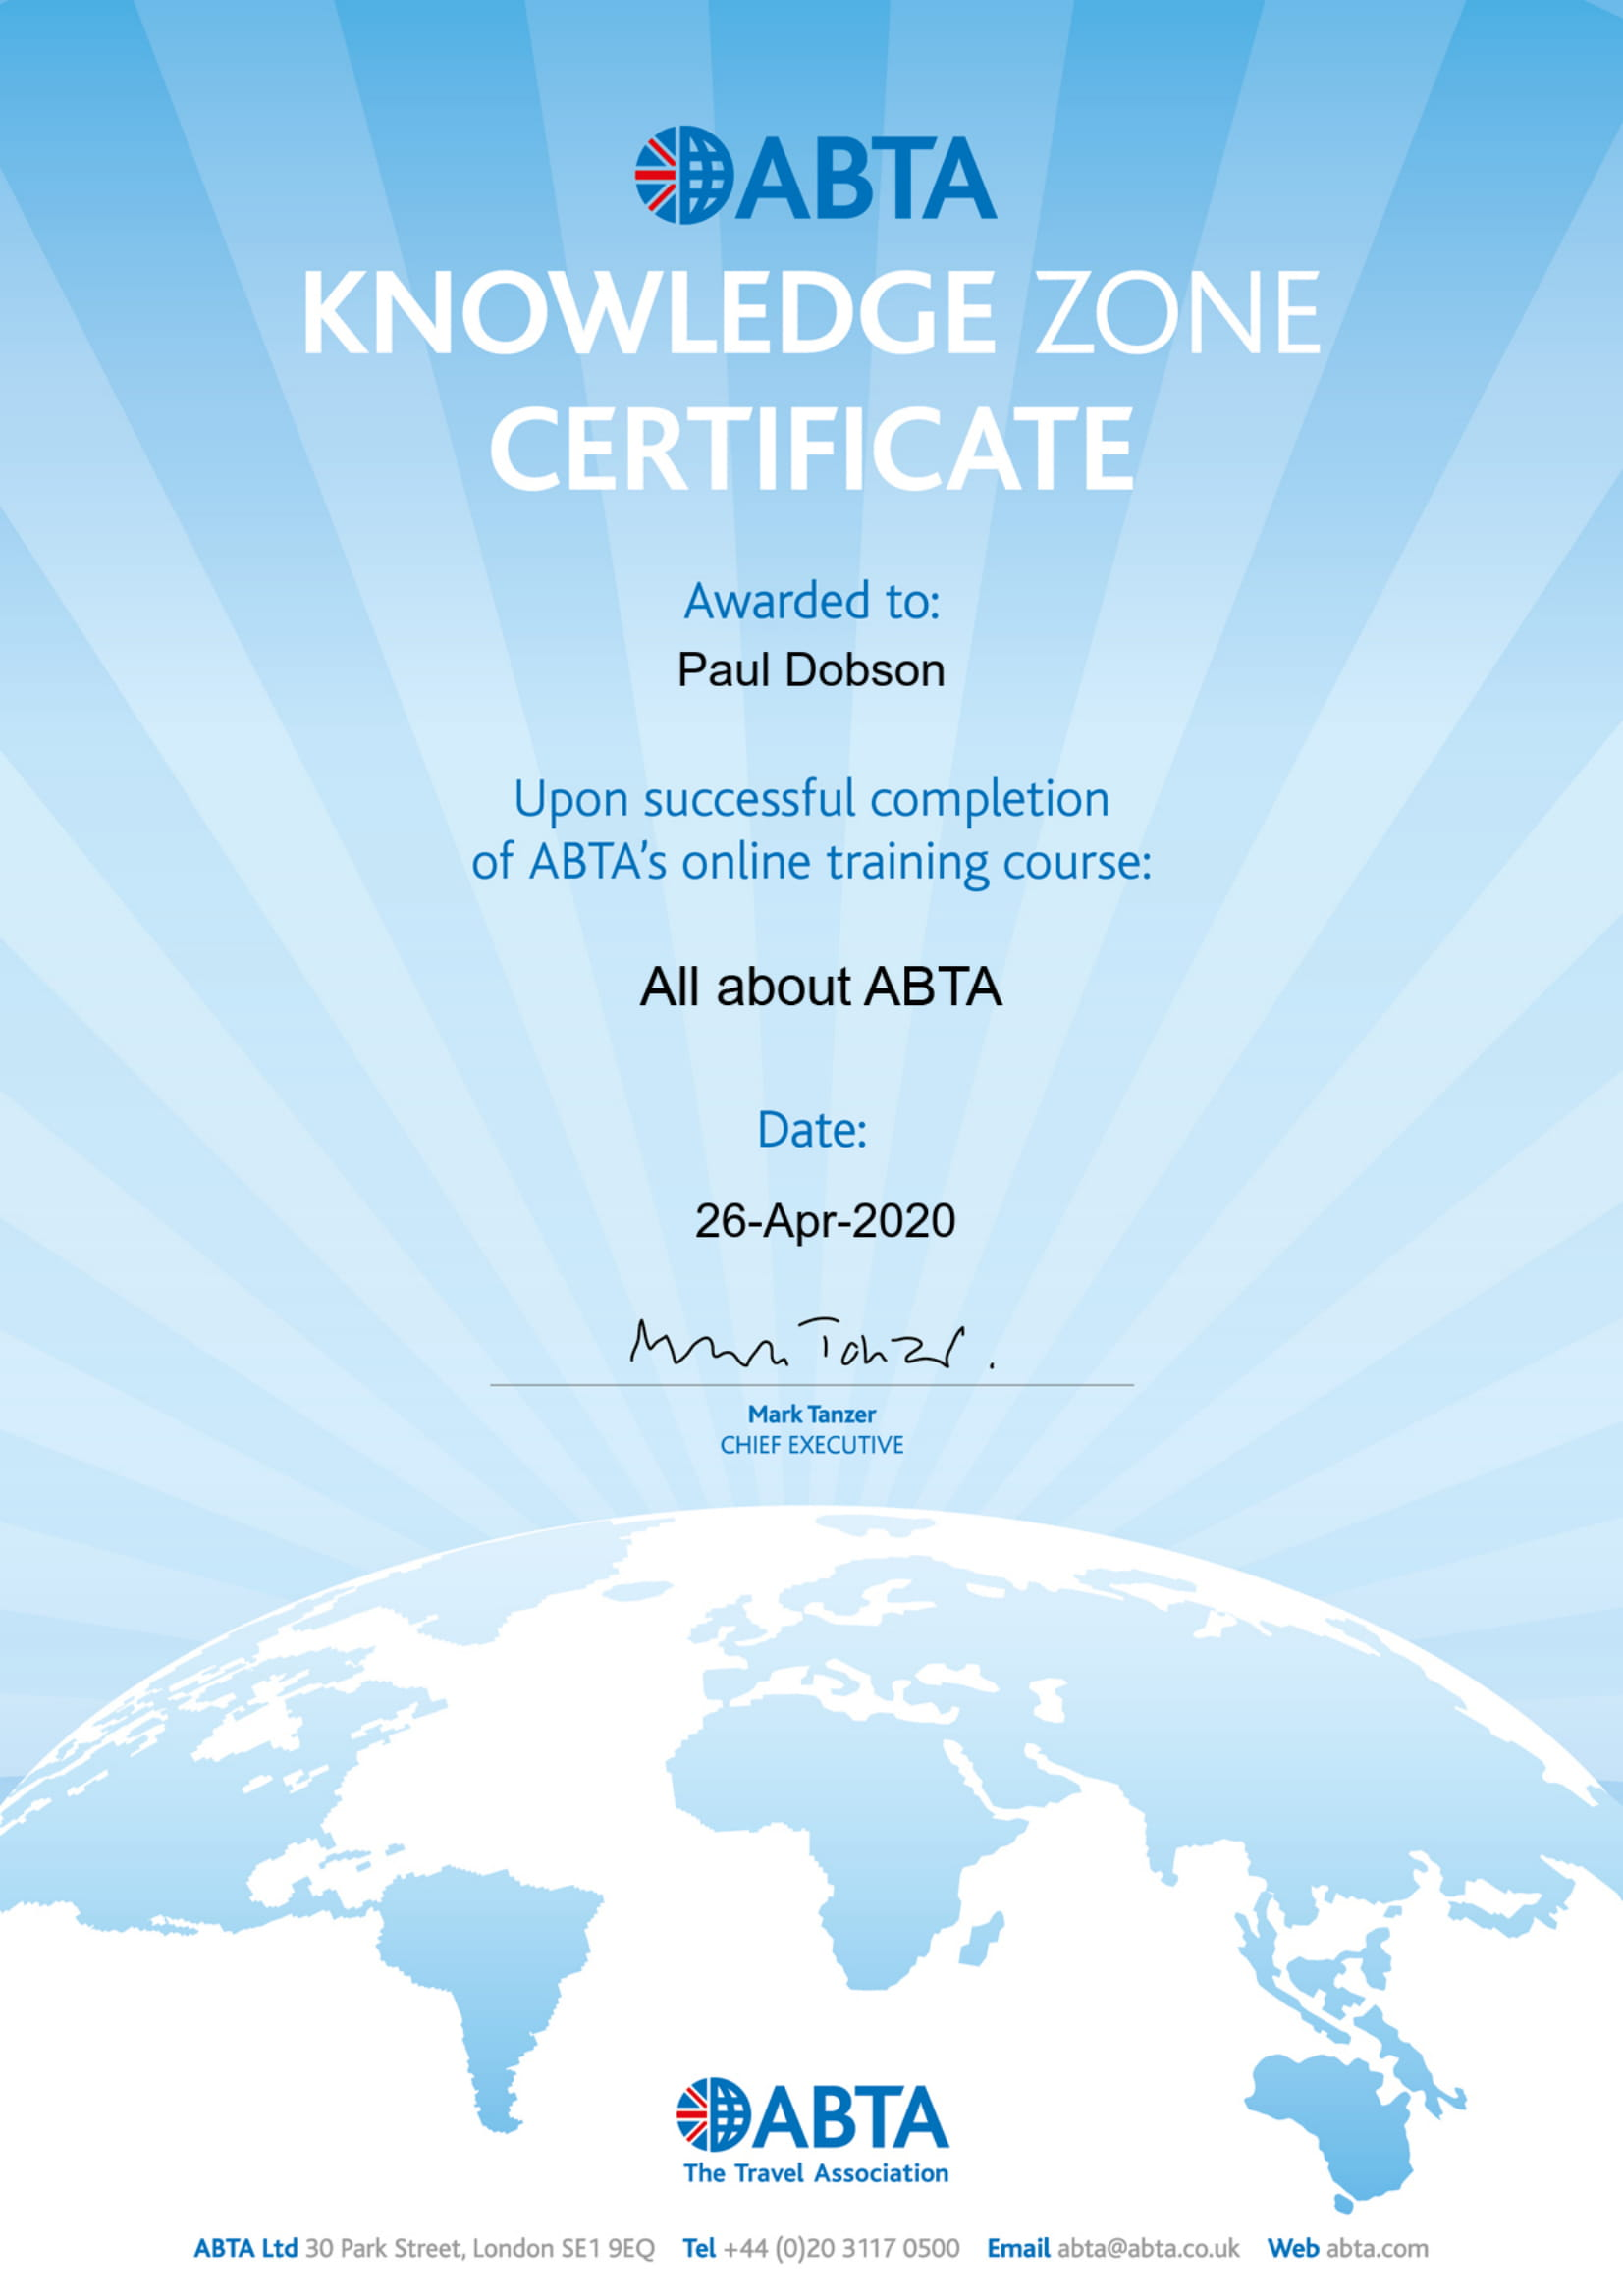 All About ABTA Certificate